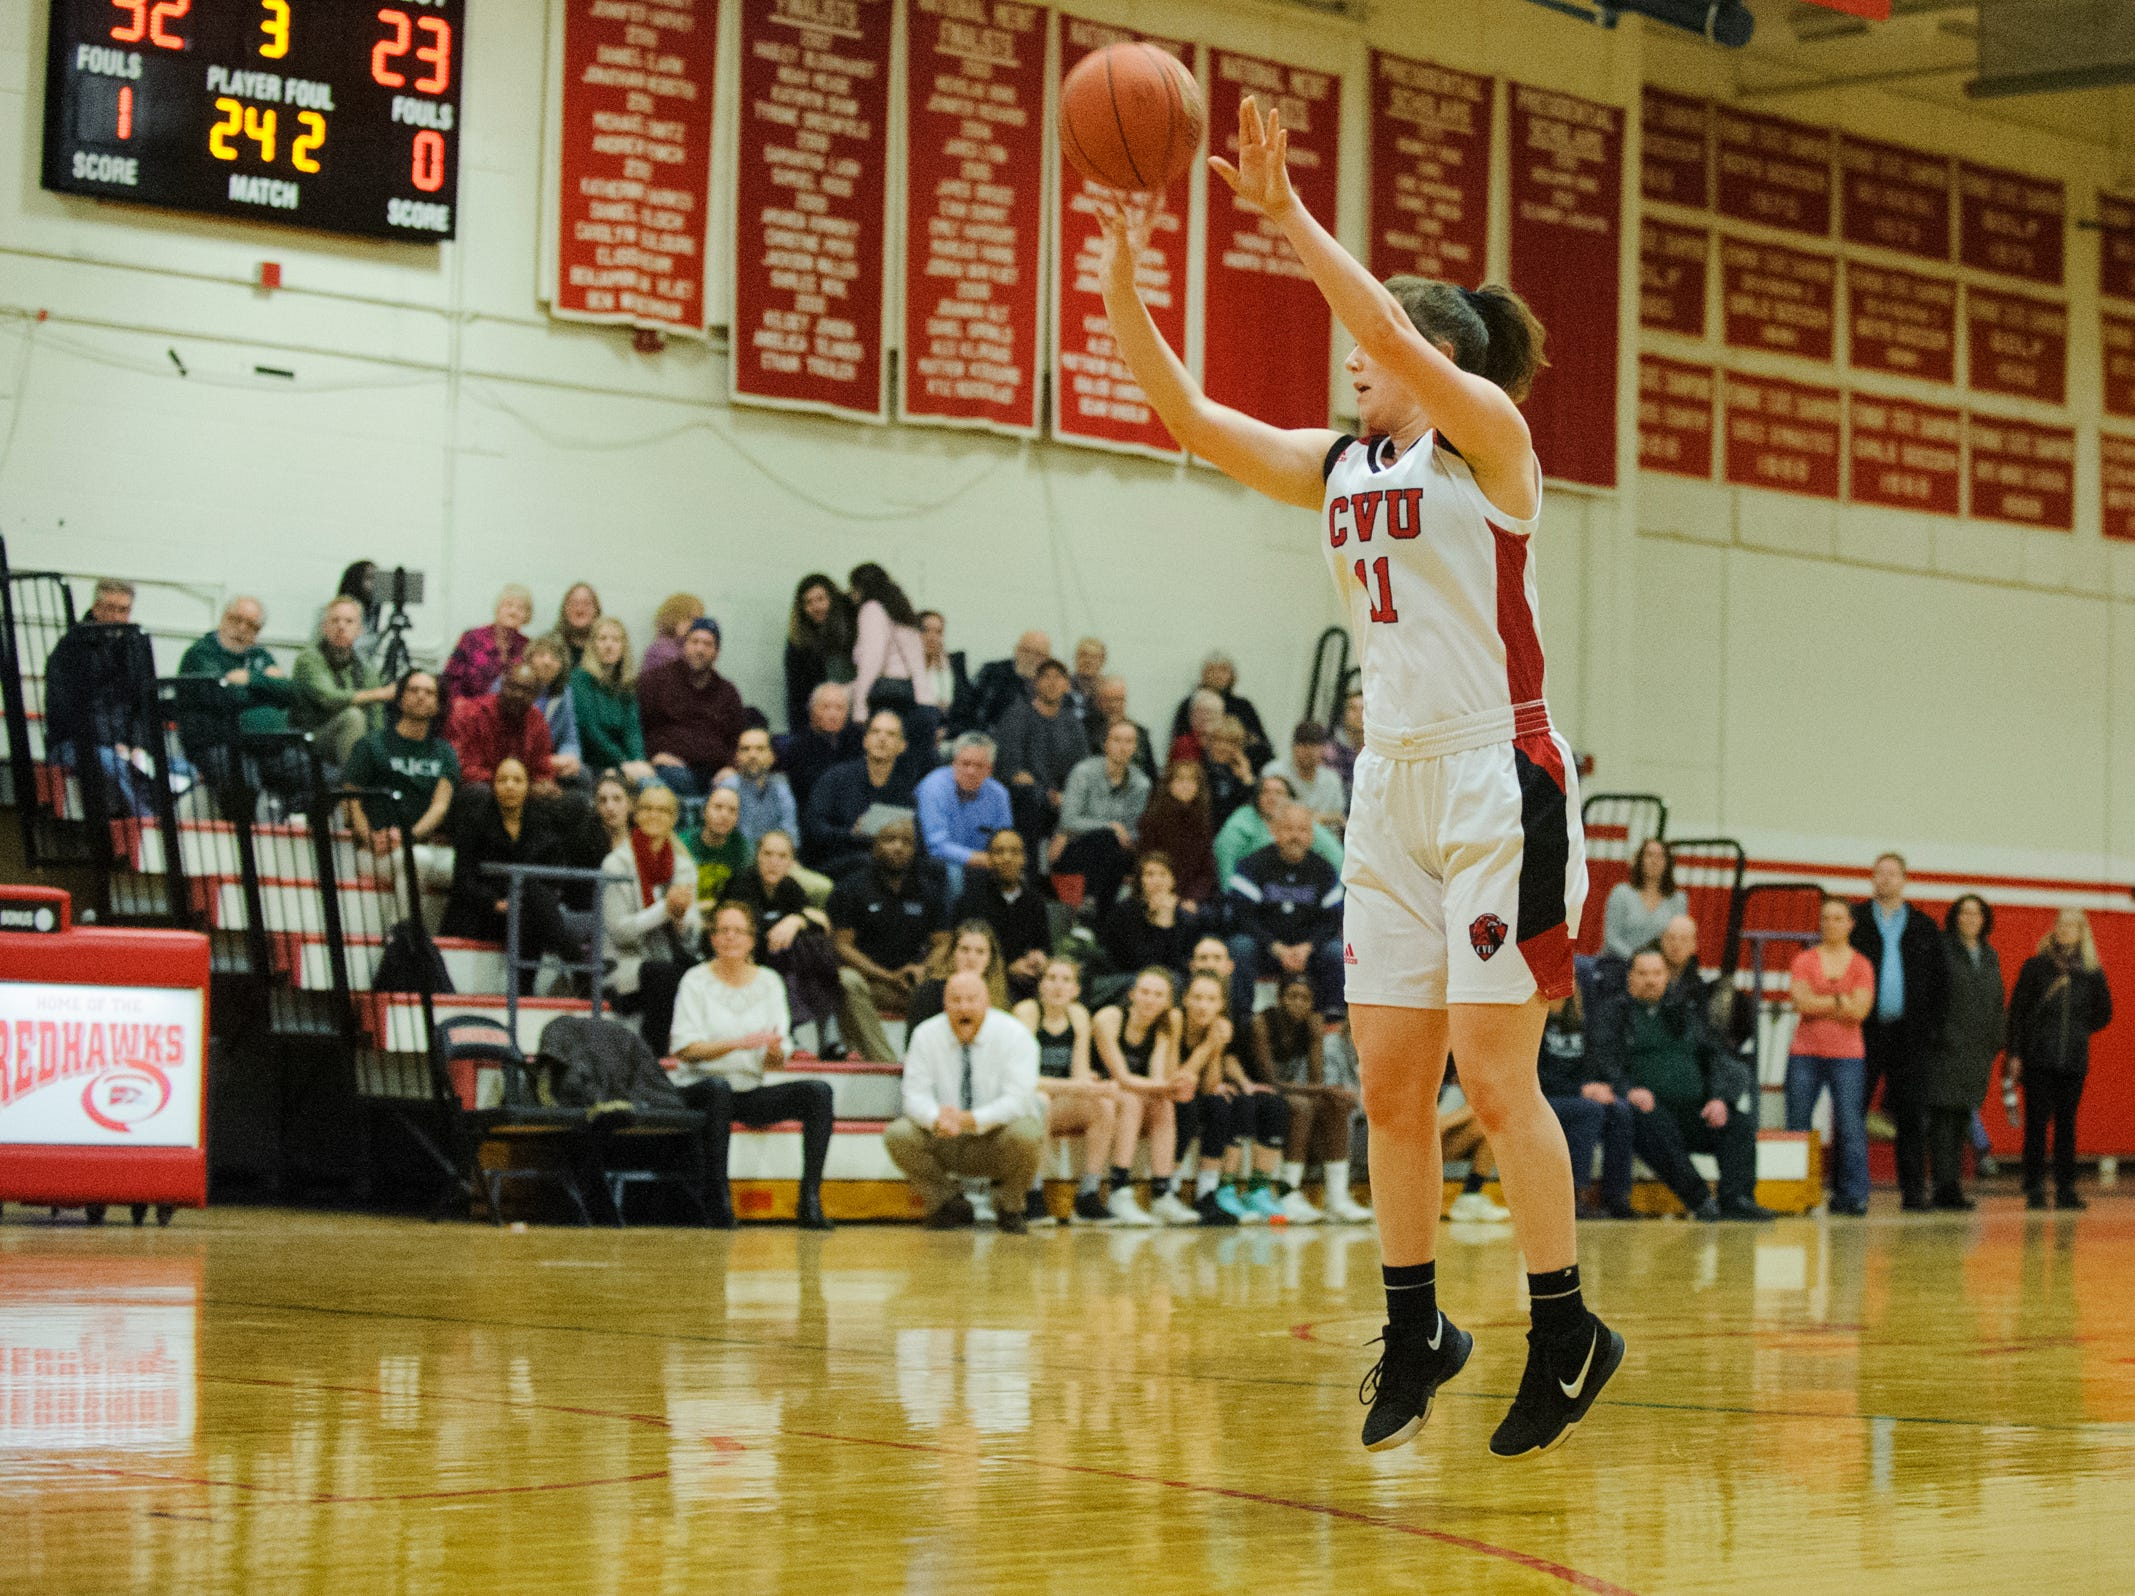 CVU's Meghan Gilwee (11) shoots the ball during high school girls basketball game between the Rice Green Knights and the Champlain Valley Union Redhawks at CVU High School on Friday night January 11, 2019 in Hinesburg.